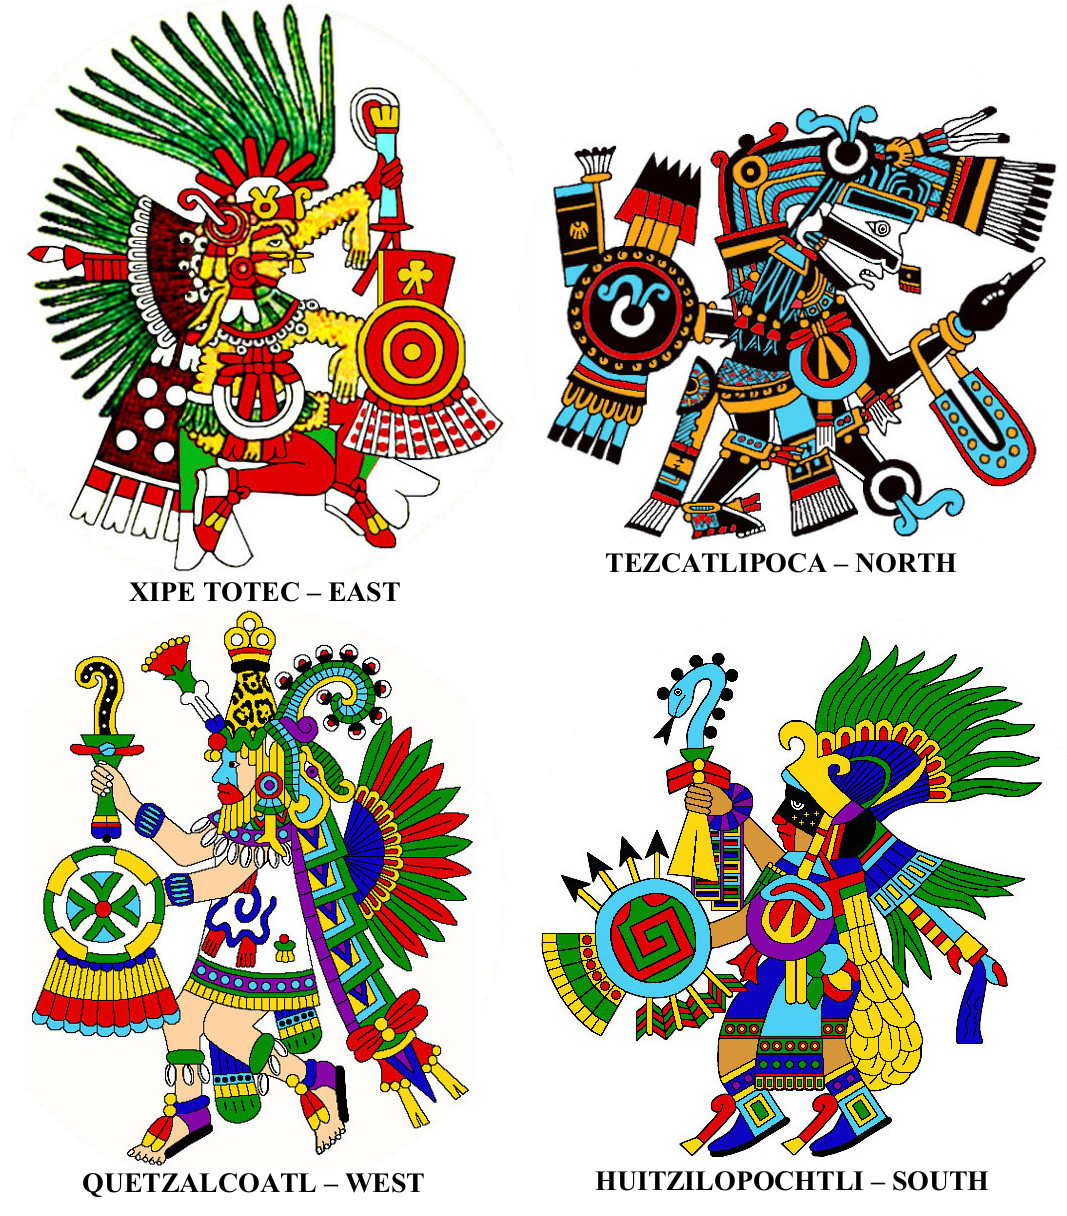 Aztec Gods of the Directions | Richard Balthazar